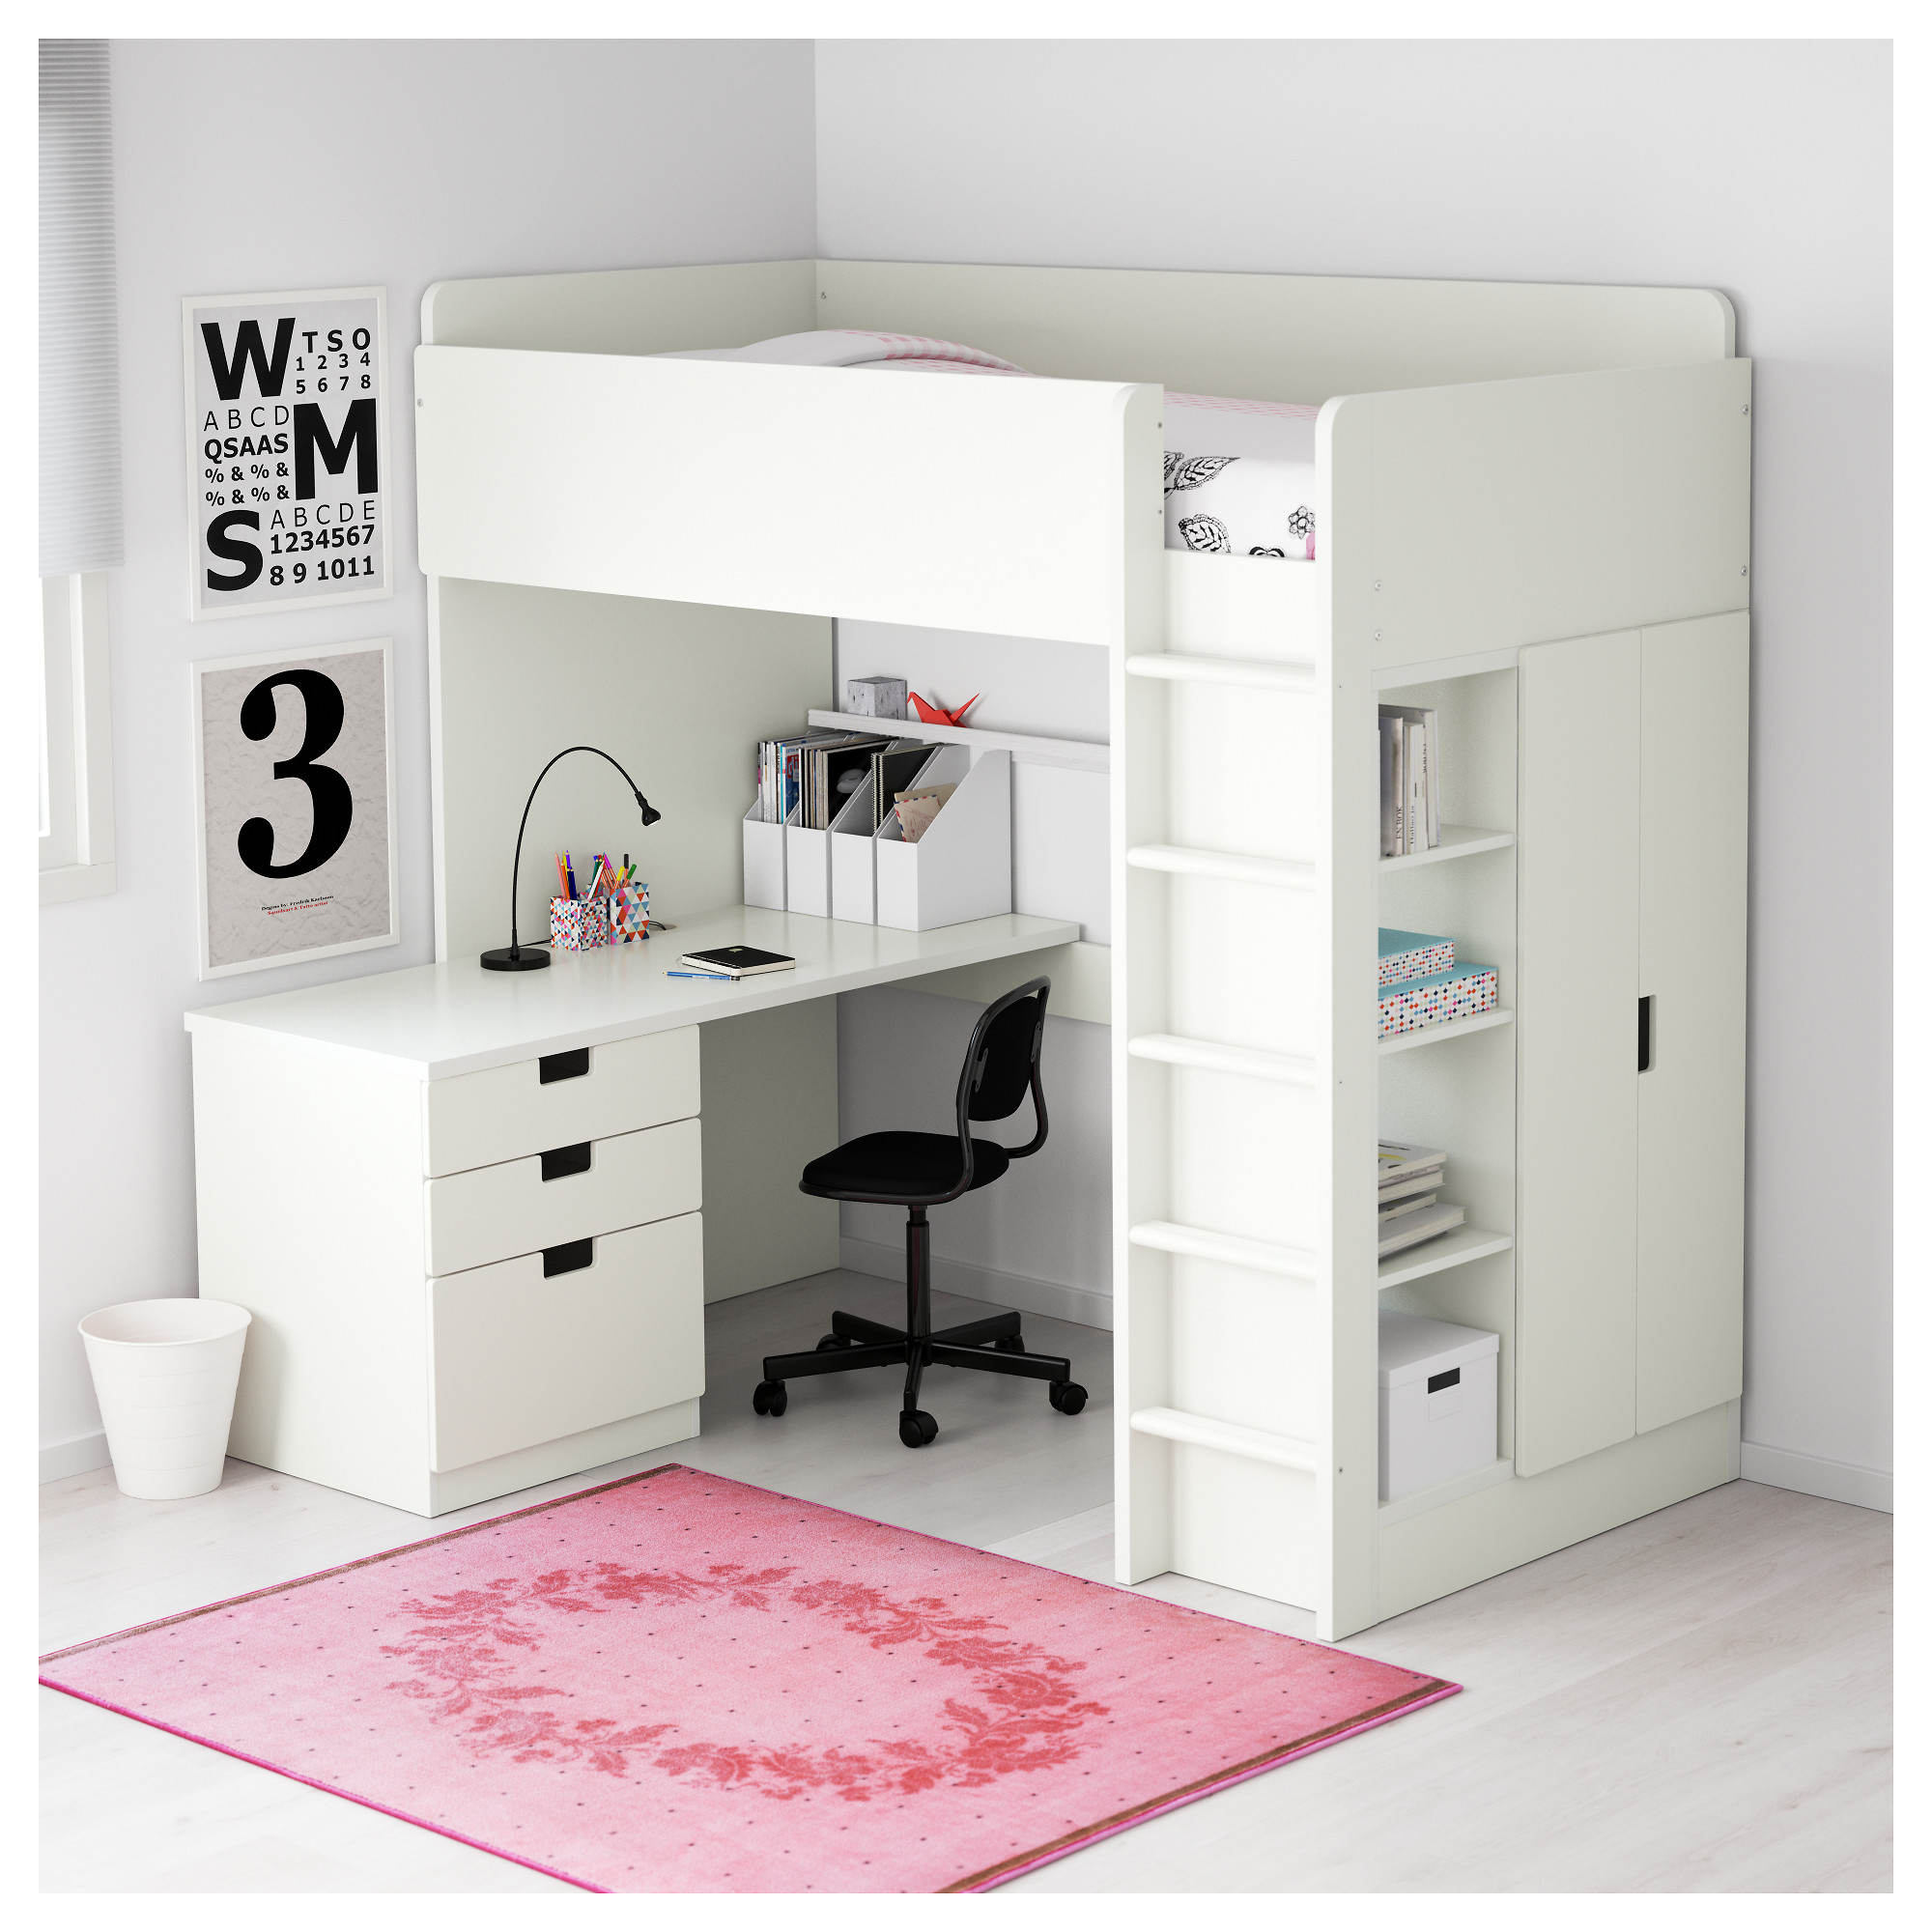 Hochbett ikea tromsö  STUVA Loft bed with 3 drawers/2 doors - white - IKEA